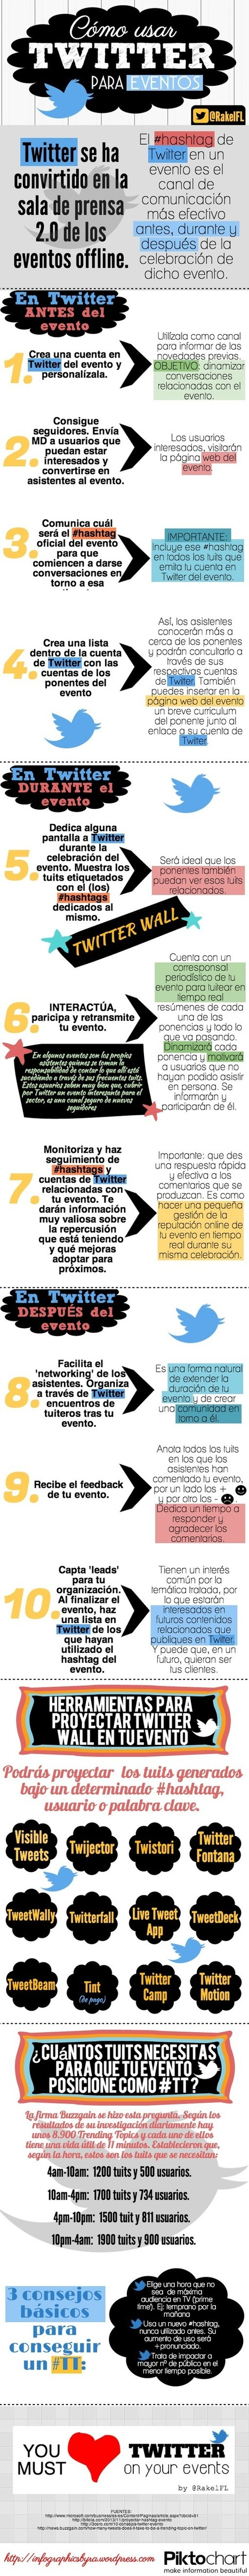 Cómo usar Twitter para eventos #infografia #infographic #marketing #socialmedia | MediosSociales | Scoop.it